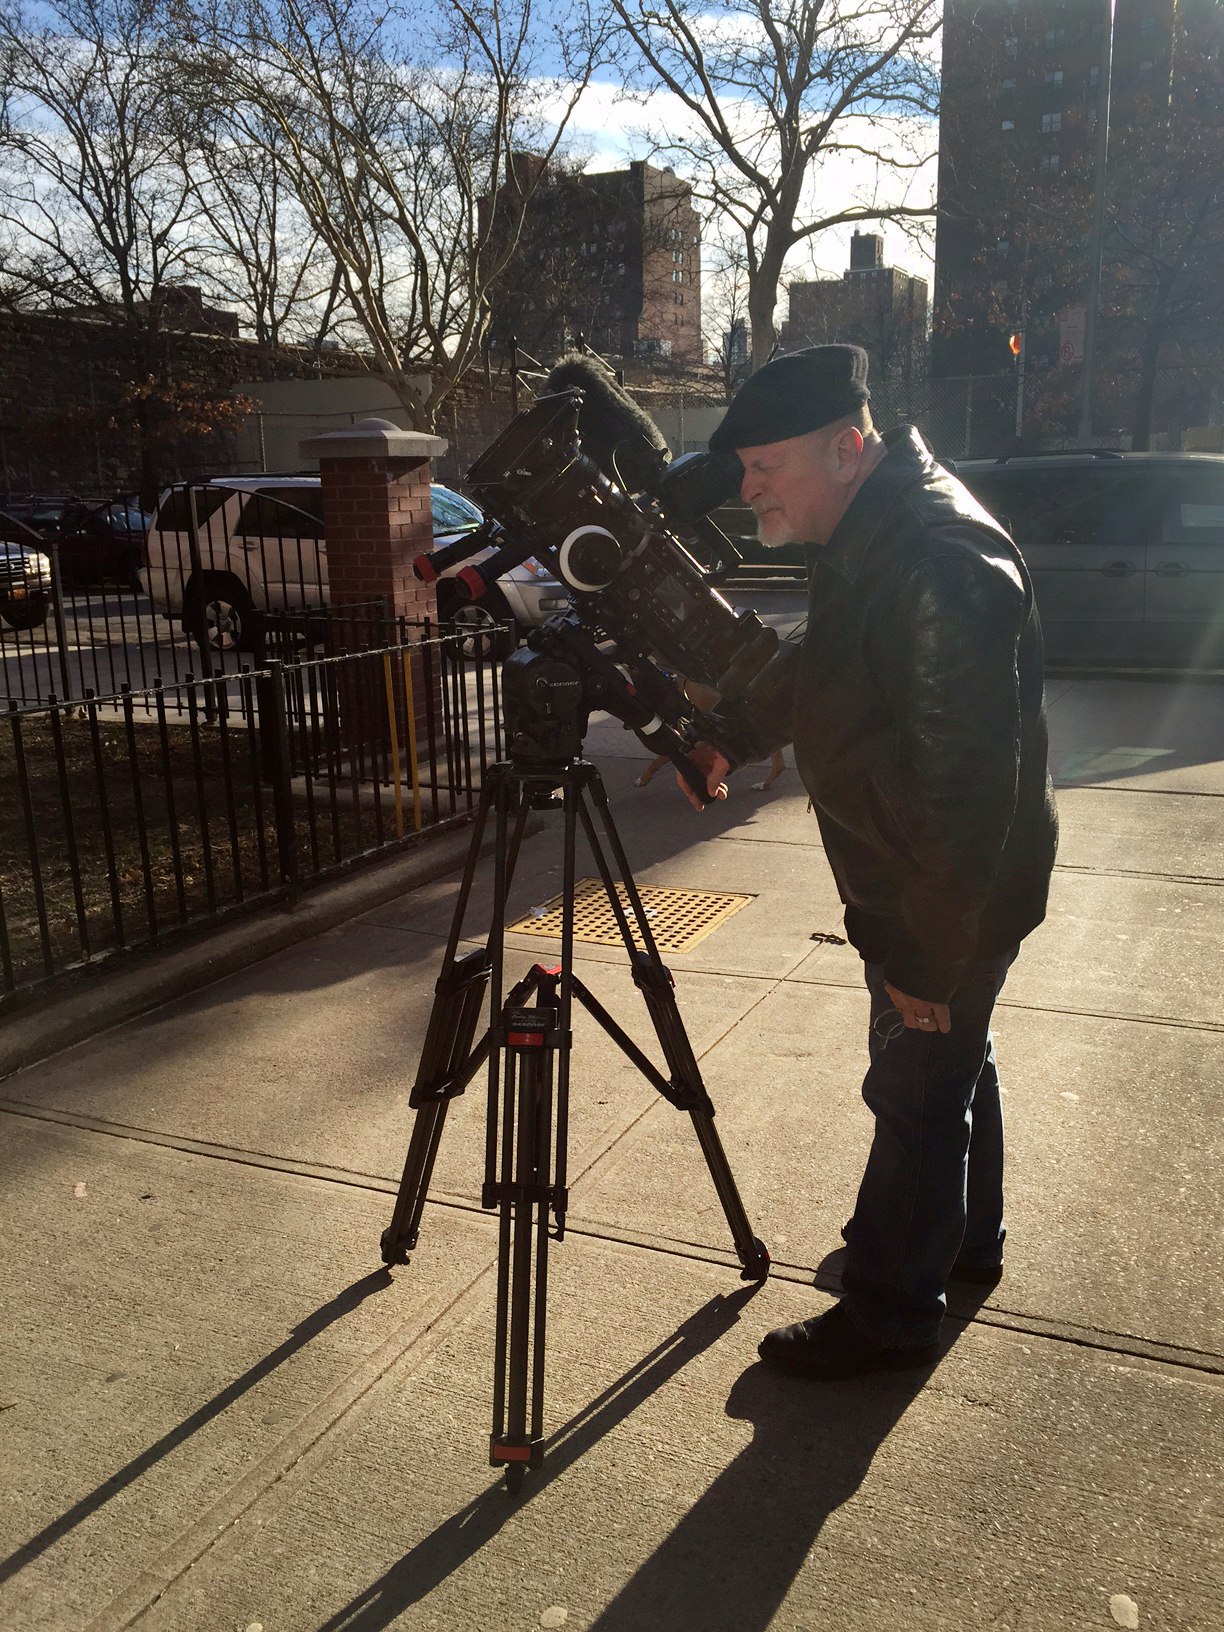 Filming on the streets of East Harlem